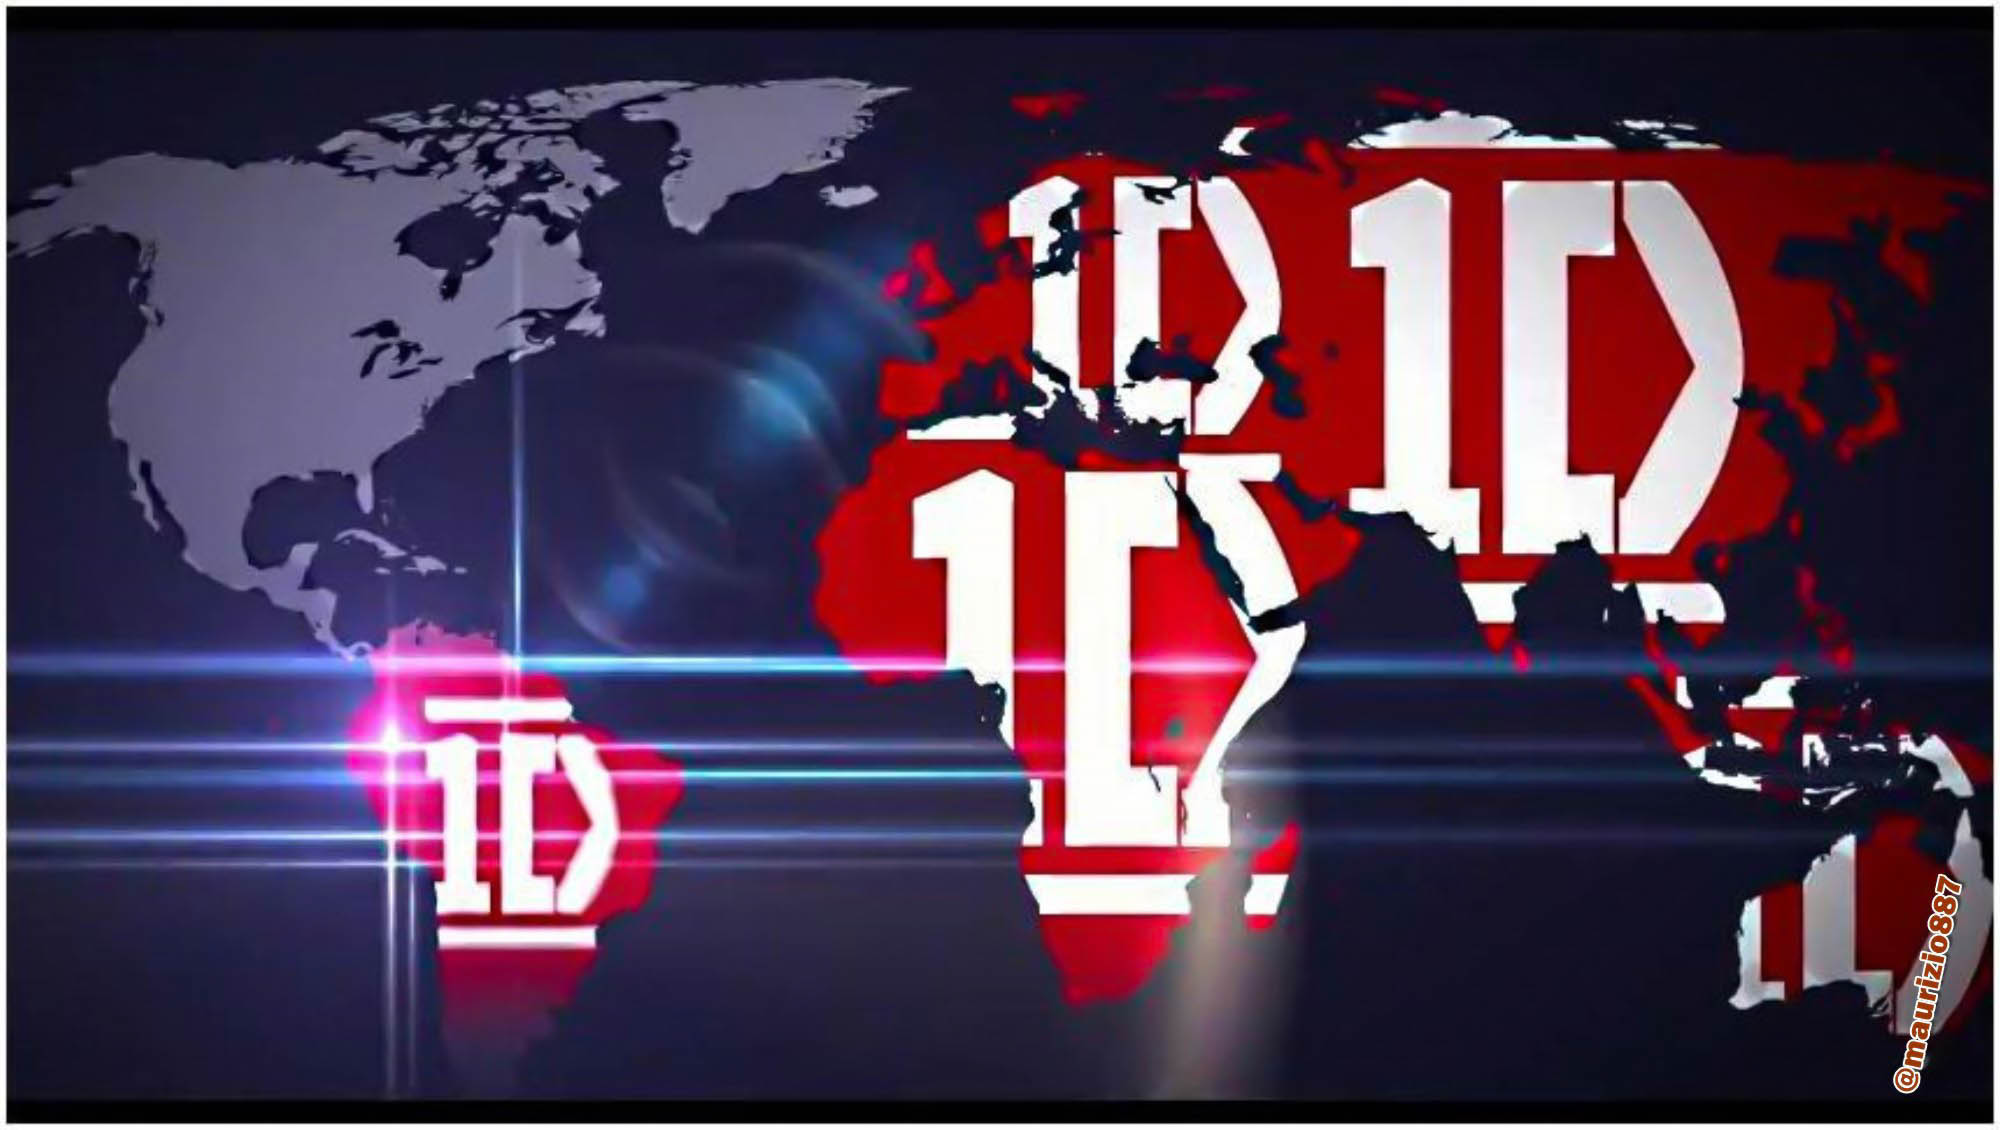 One Direction: This Is Us 2013 movie